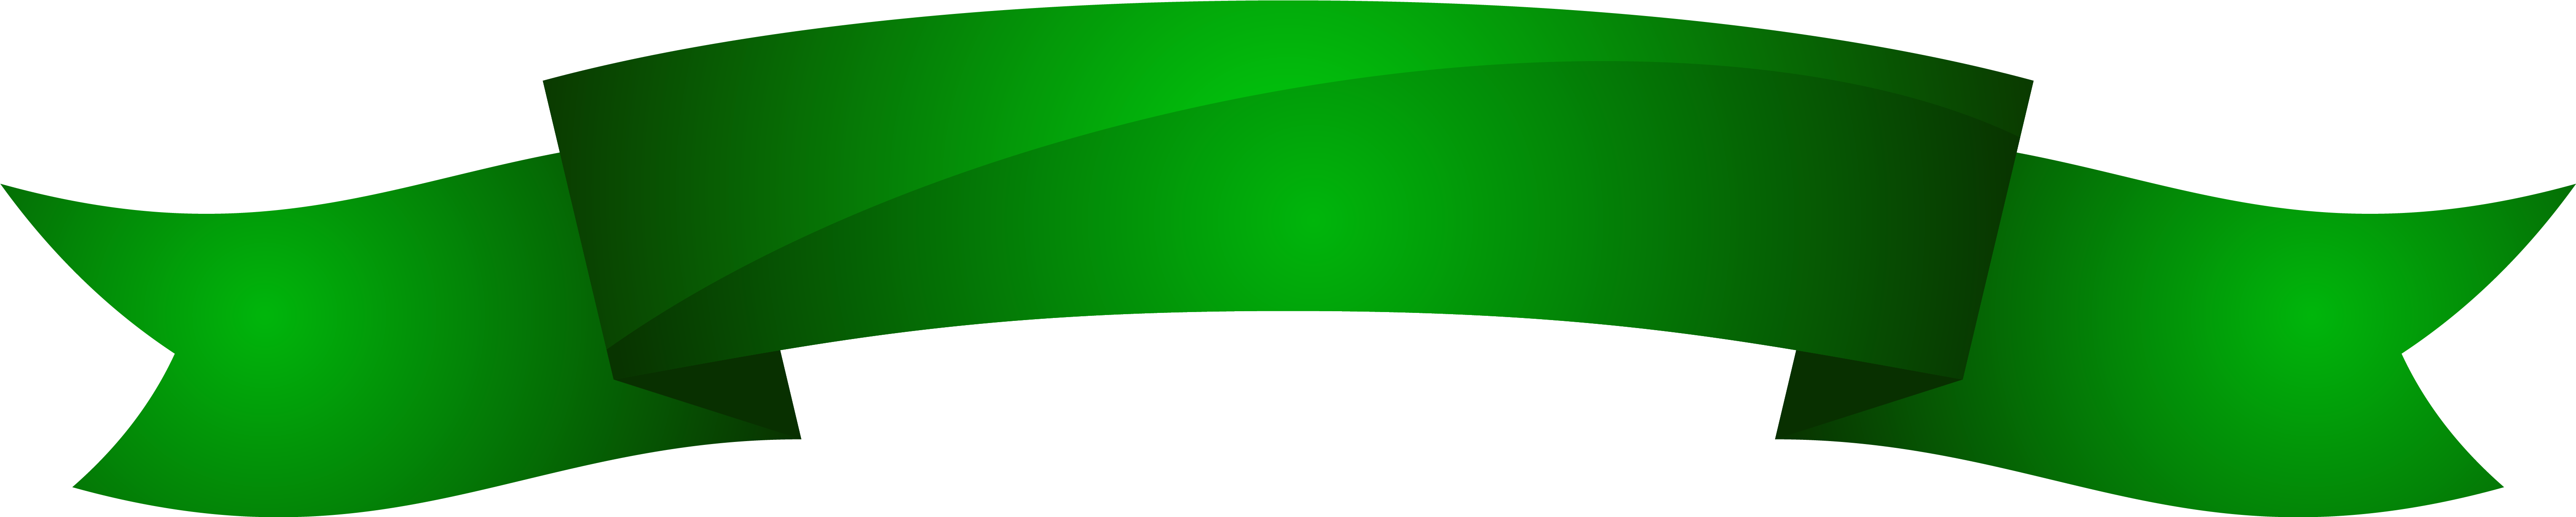 Green Ribbon Banner Png (6253x1411), Png Download